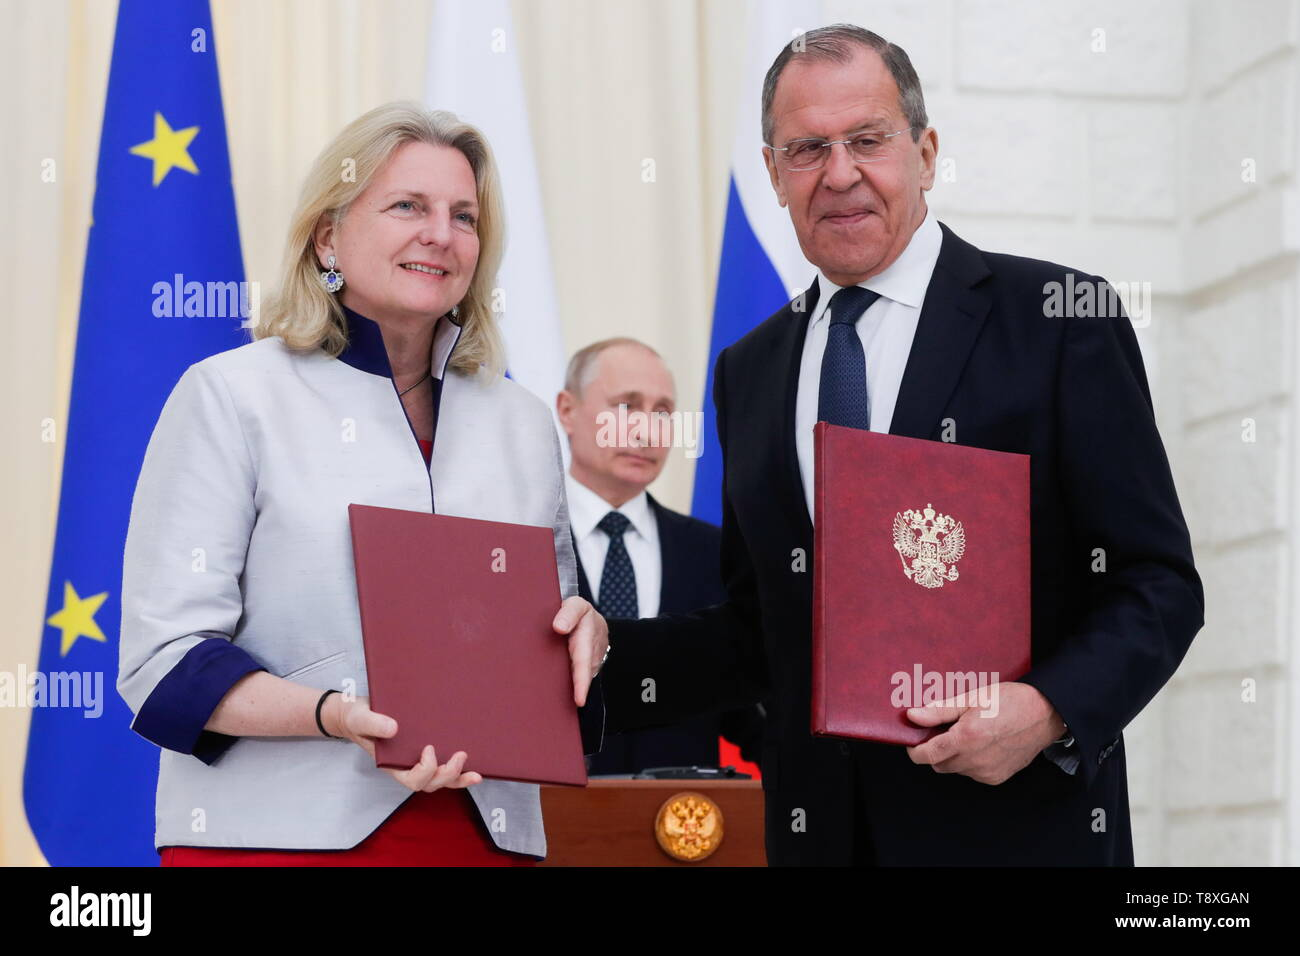 Sochi, Russia. 15th May, 2019. SOCHI, RUSSIA - MAY 15, 2019: Austria's Foreign Minister Karin Kneissl and Russia's Foreign Minister Sergei Lavrov (L-R front) sign joint documents at a ceremony attended by Russia's President Vladimir Putin and following Russian-Austrian talks at the Rus health resort. Mikhail Metzel/TASS Credit: ITAR-TASS News Agency/Alamy Live News - Stock Image